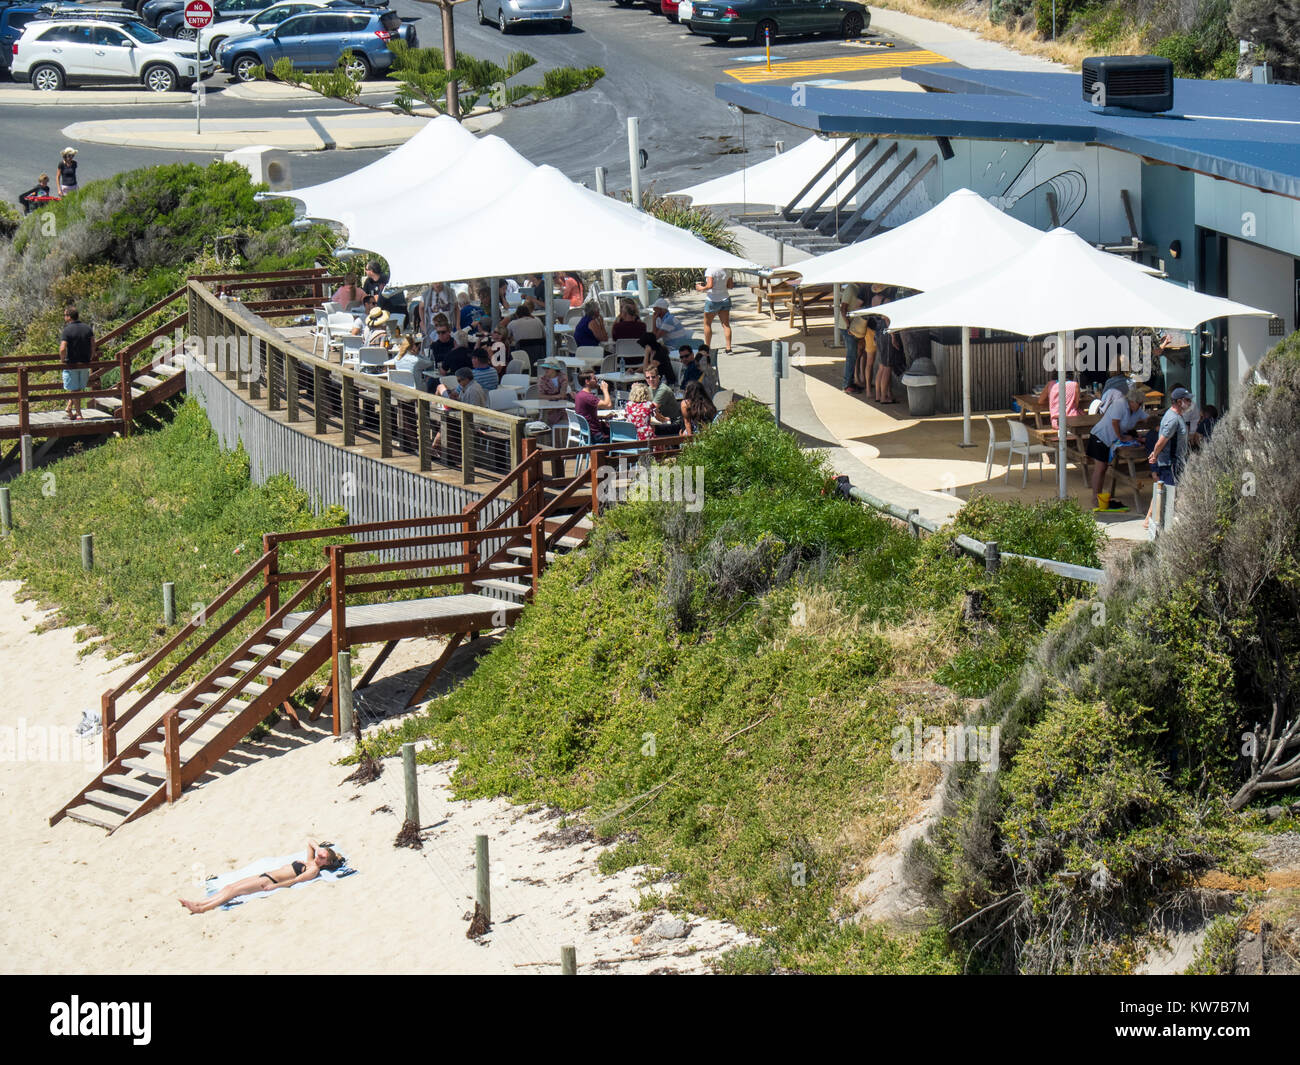 Al fresco dining at a  popular restaurant at People at Gnarabup Beach, Margaret River, Western Australia. - Stock Image